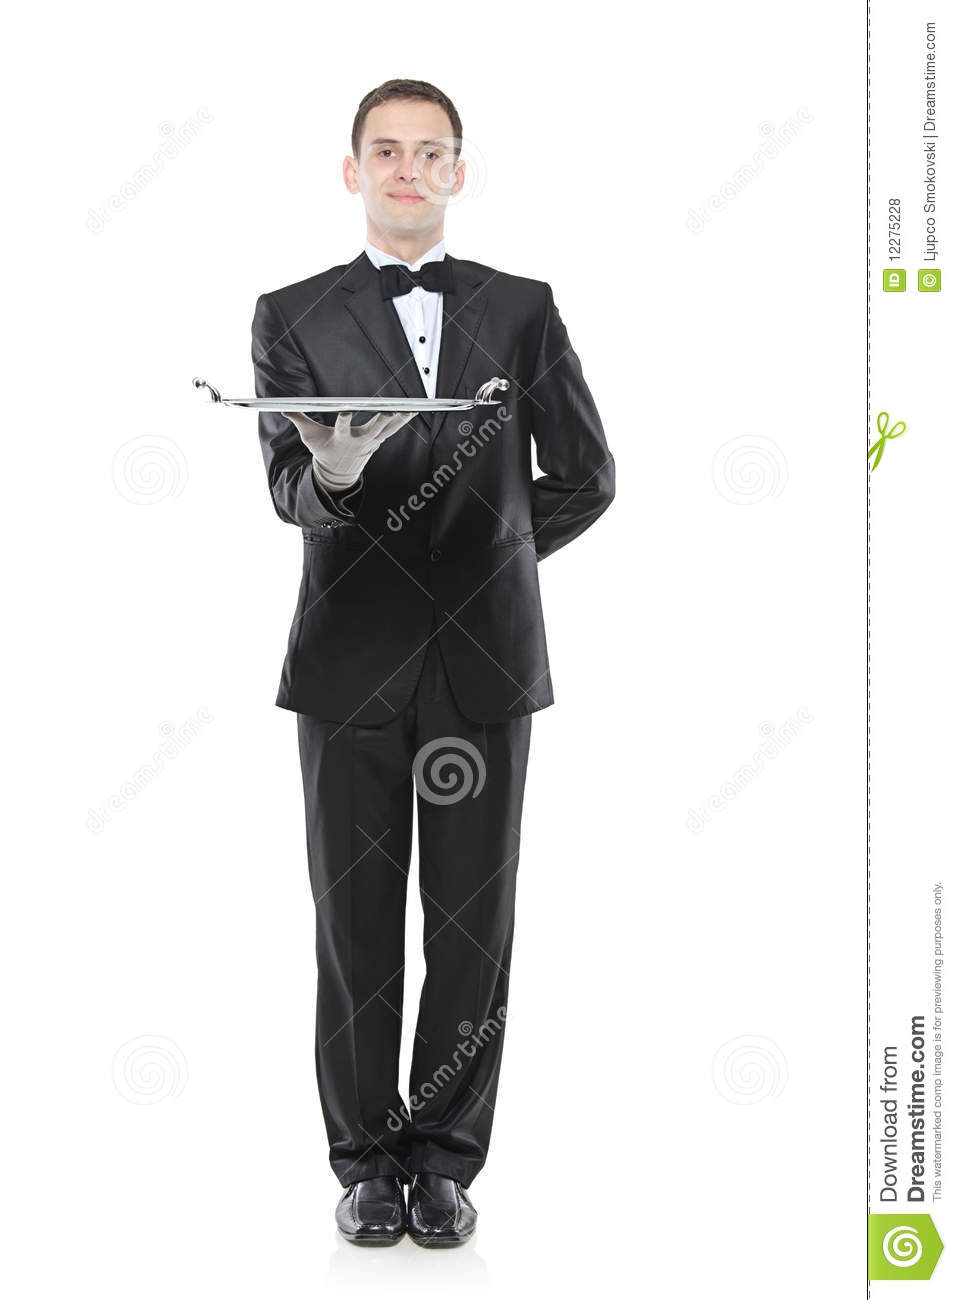 A Buttler Holding A Tray Royalty Free Stock Photos Image